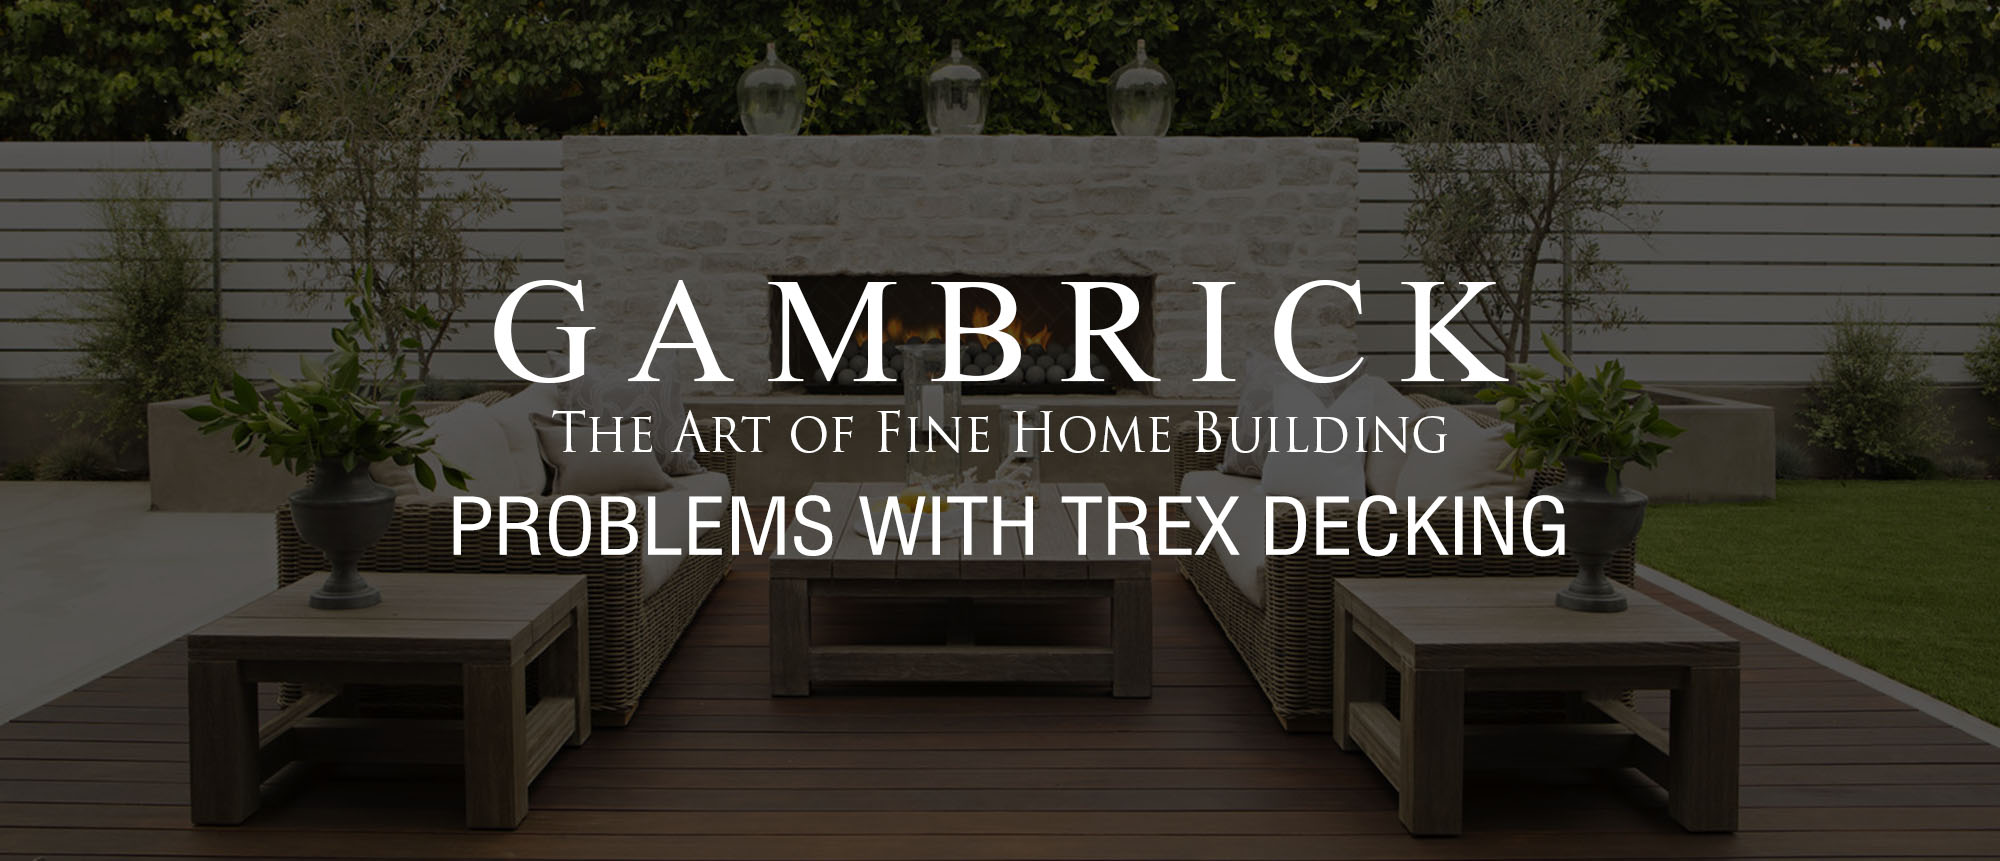 Problems With Trex Decking Banner 1 Top Nj New Home Builder